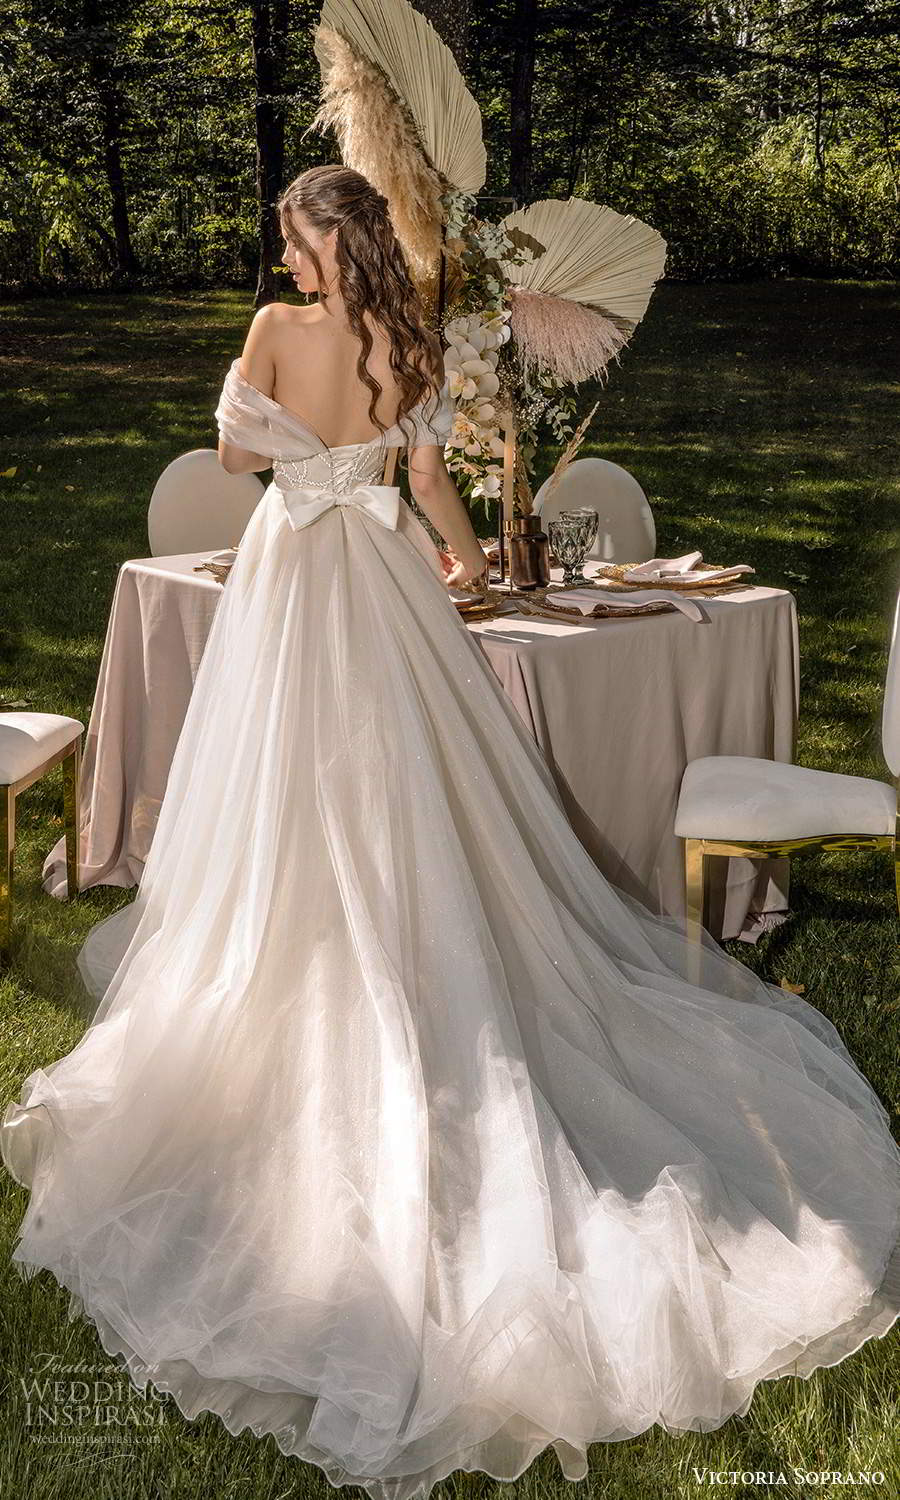 victoria soprano 2022 bridal off shoulder sweetheart neckline embellished bodice a line ball gown wedding dress chapel train blush (14) bv